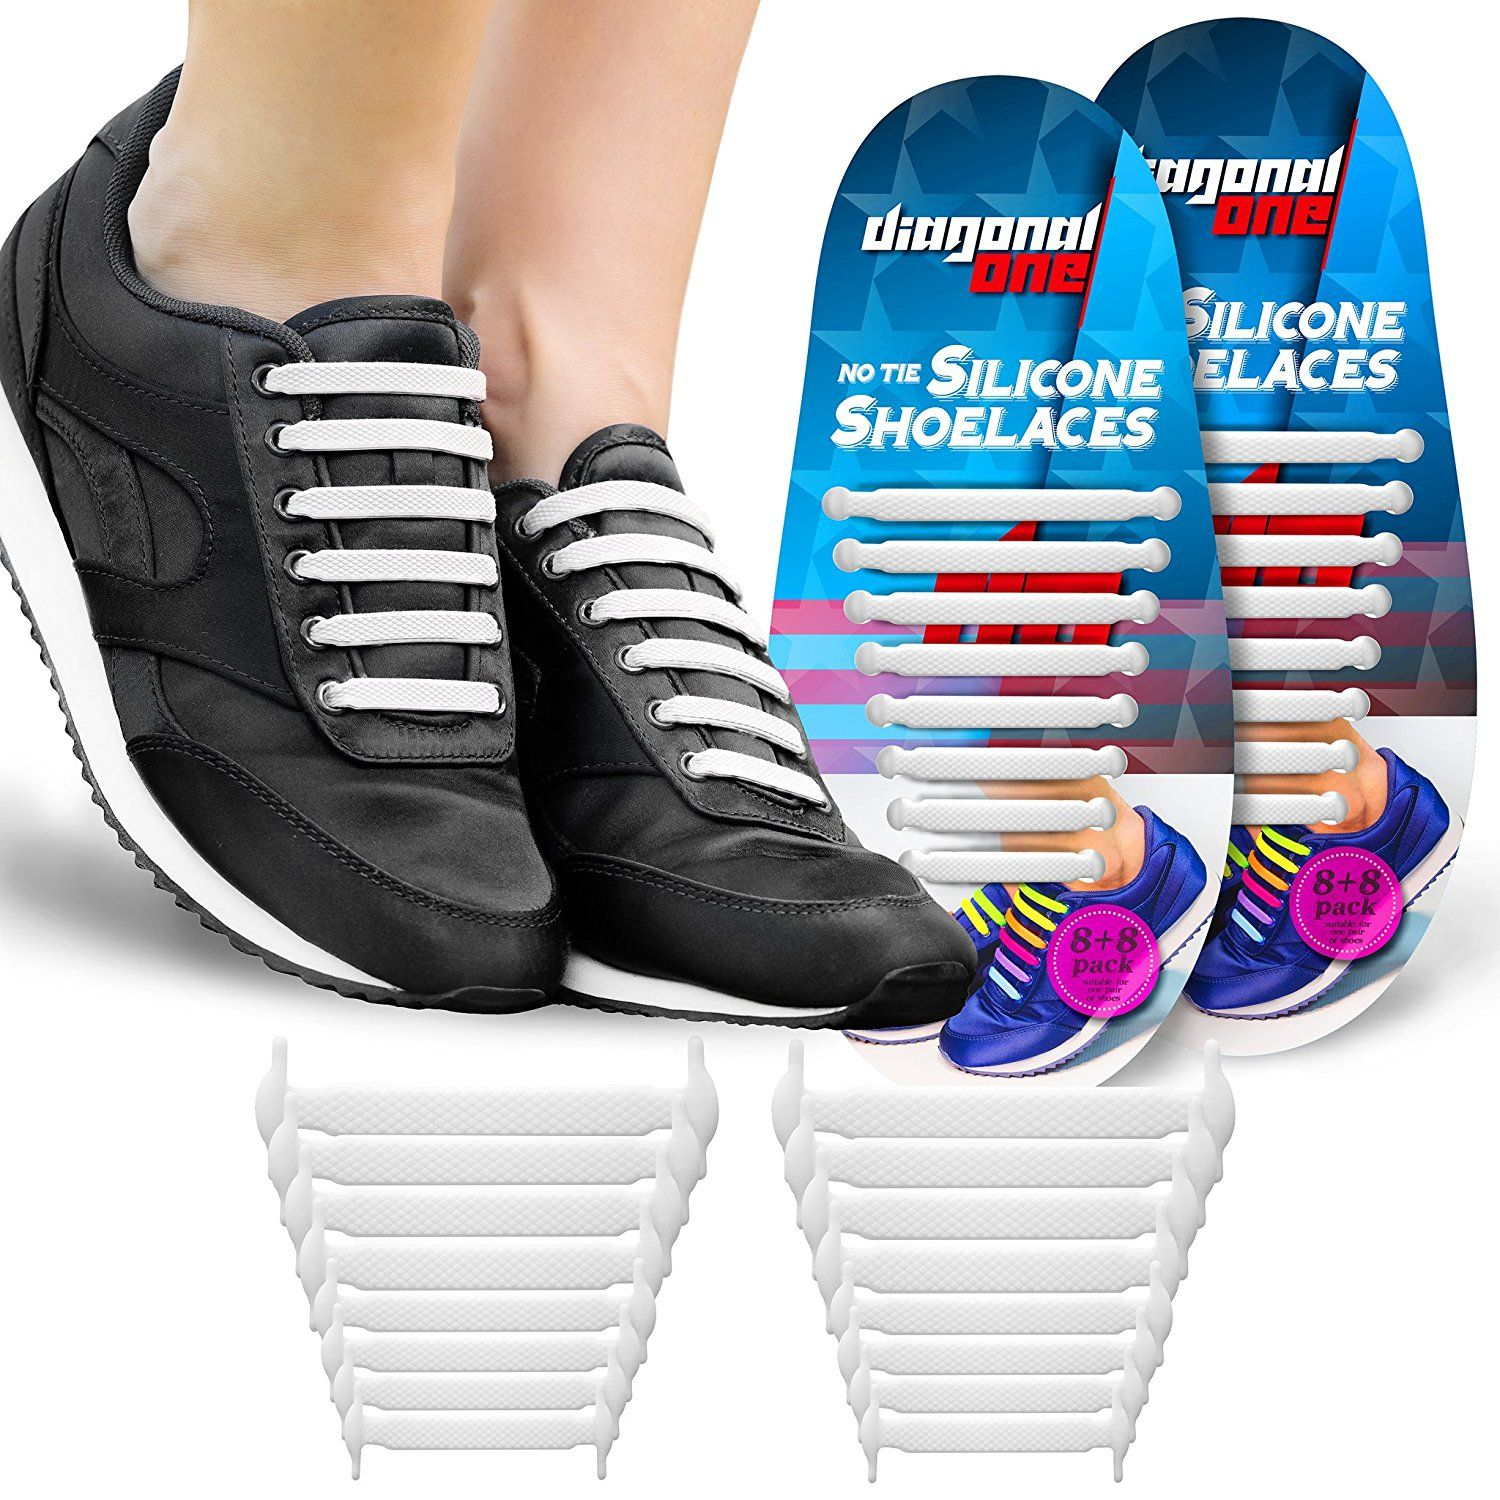 d8dab2ad437d8 No Tie Shoelaces for Kids & Adults. THE Elastic Silicone Shoe Laces ...